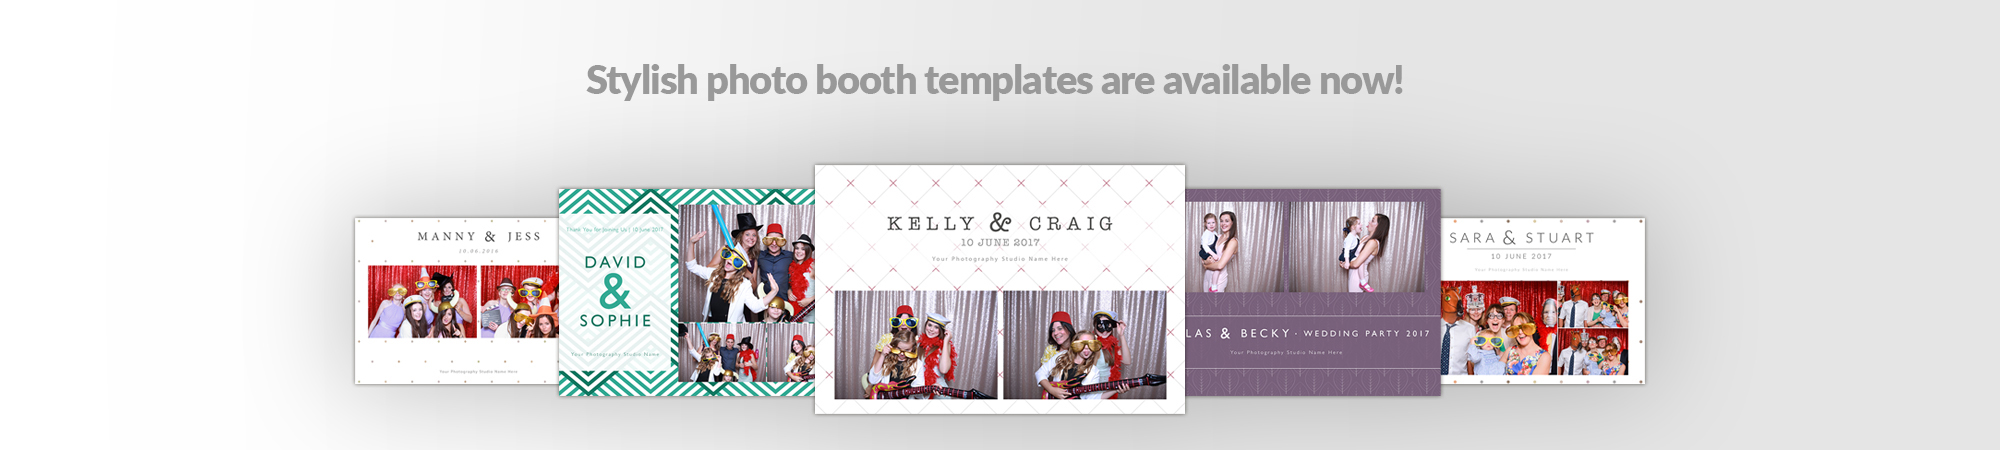 photo booth business page image click to see various templates